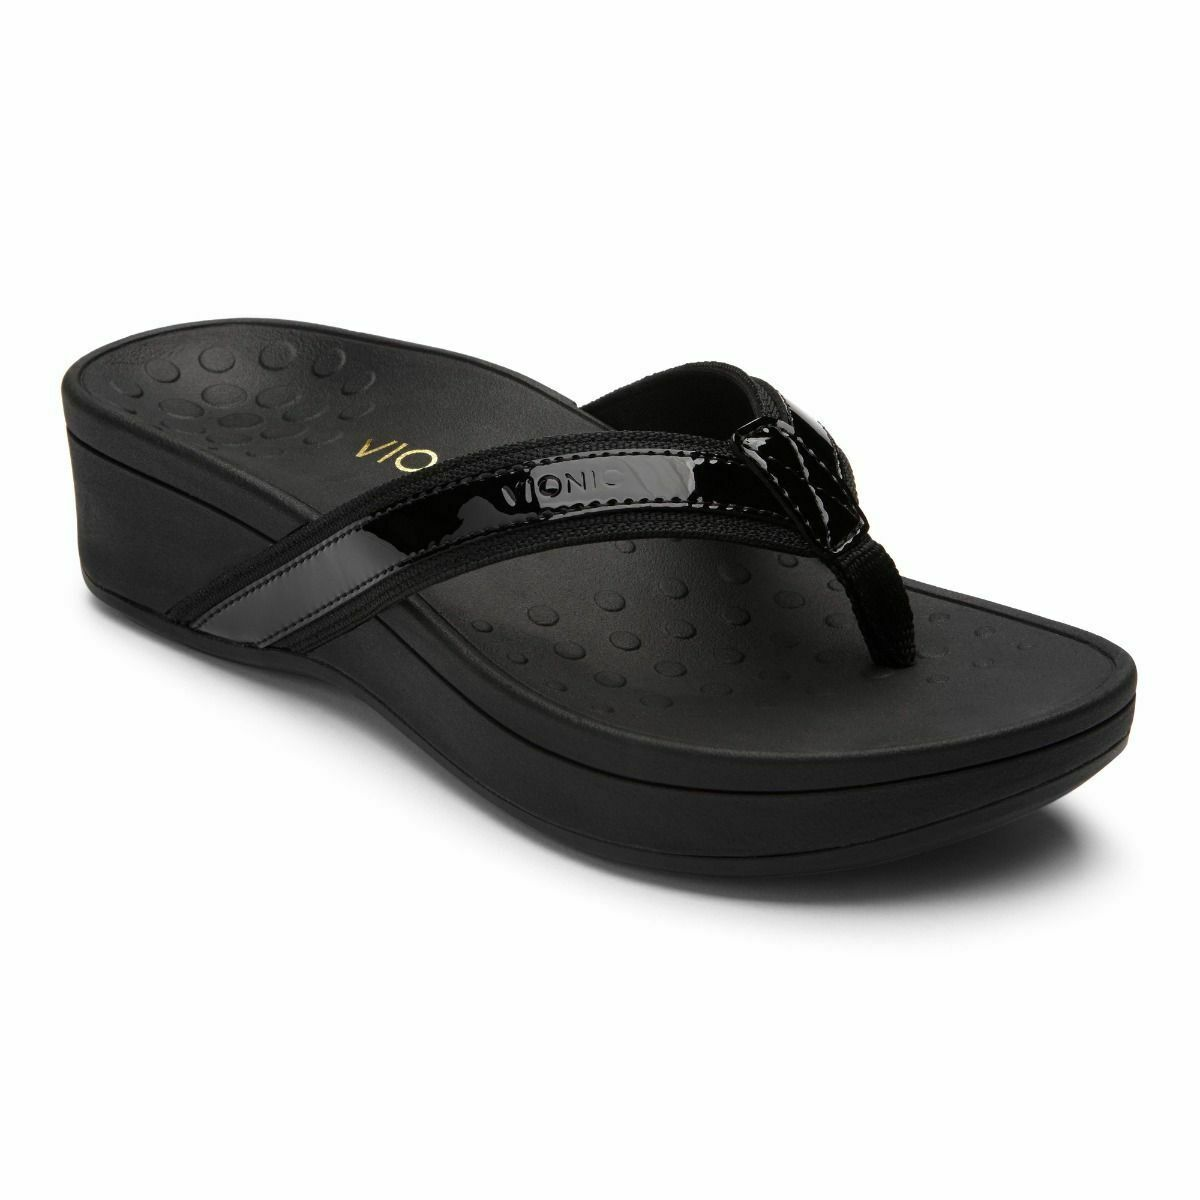 Vionic Orthotic Women's High Tide Platform Sandal - Black